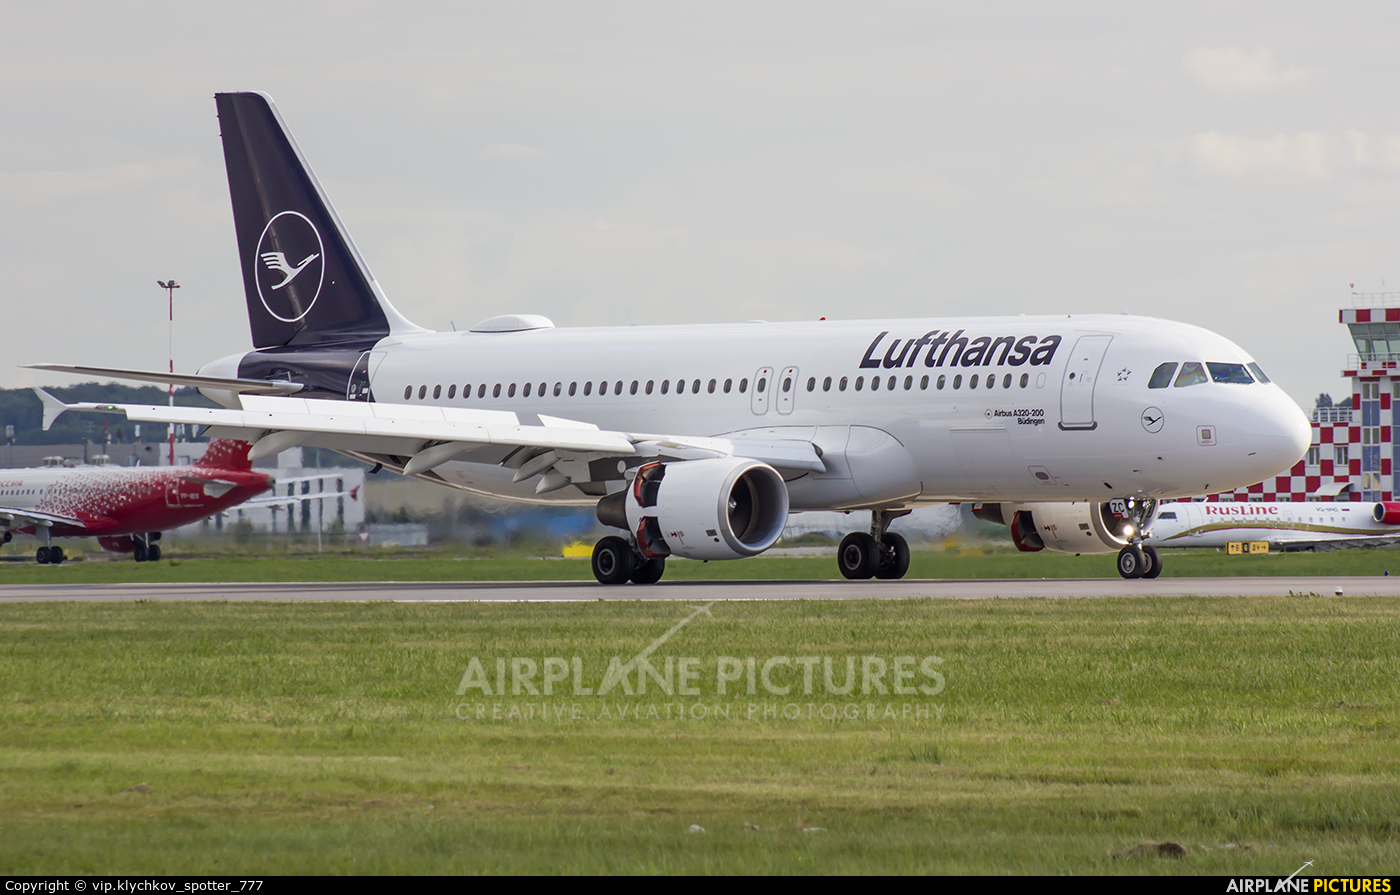 Lufthansa D-AIZC aircraft at St. Petersburg - Pulkovo